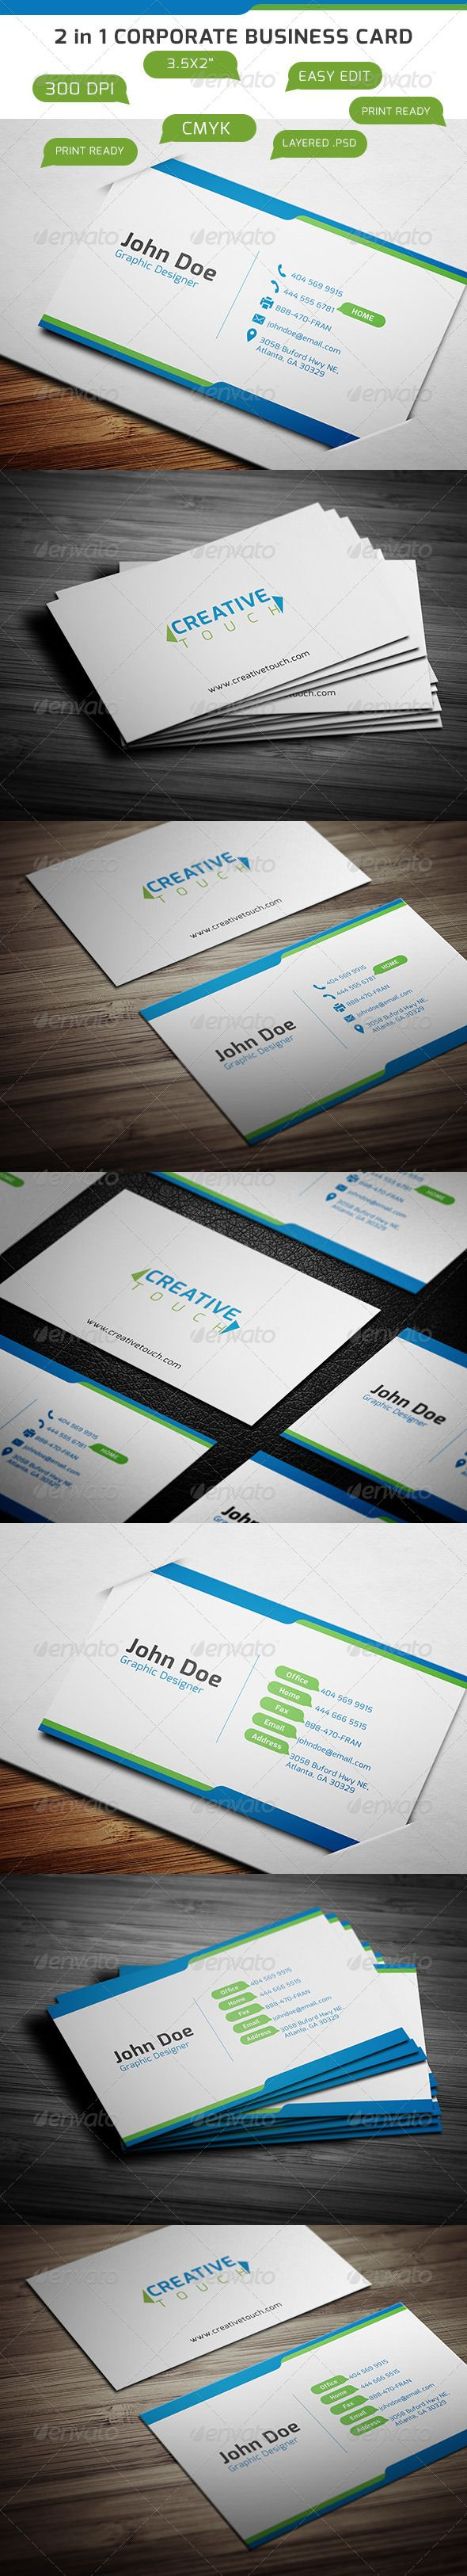 Free Quark Business Card Template Gallery - Card Design And Card ...